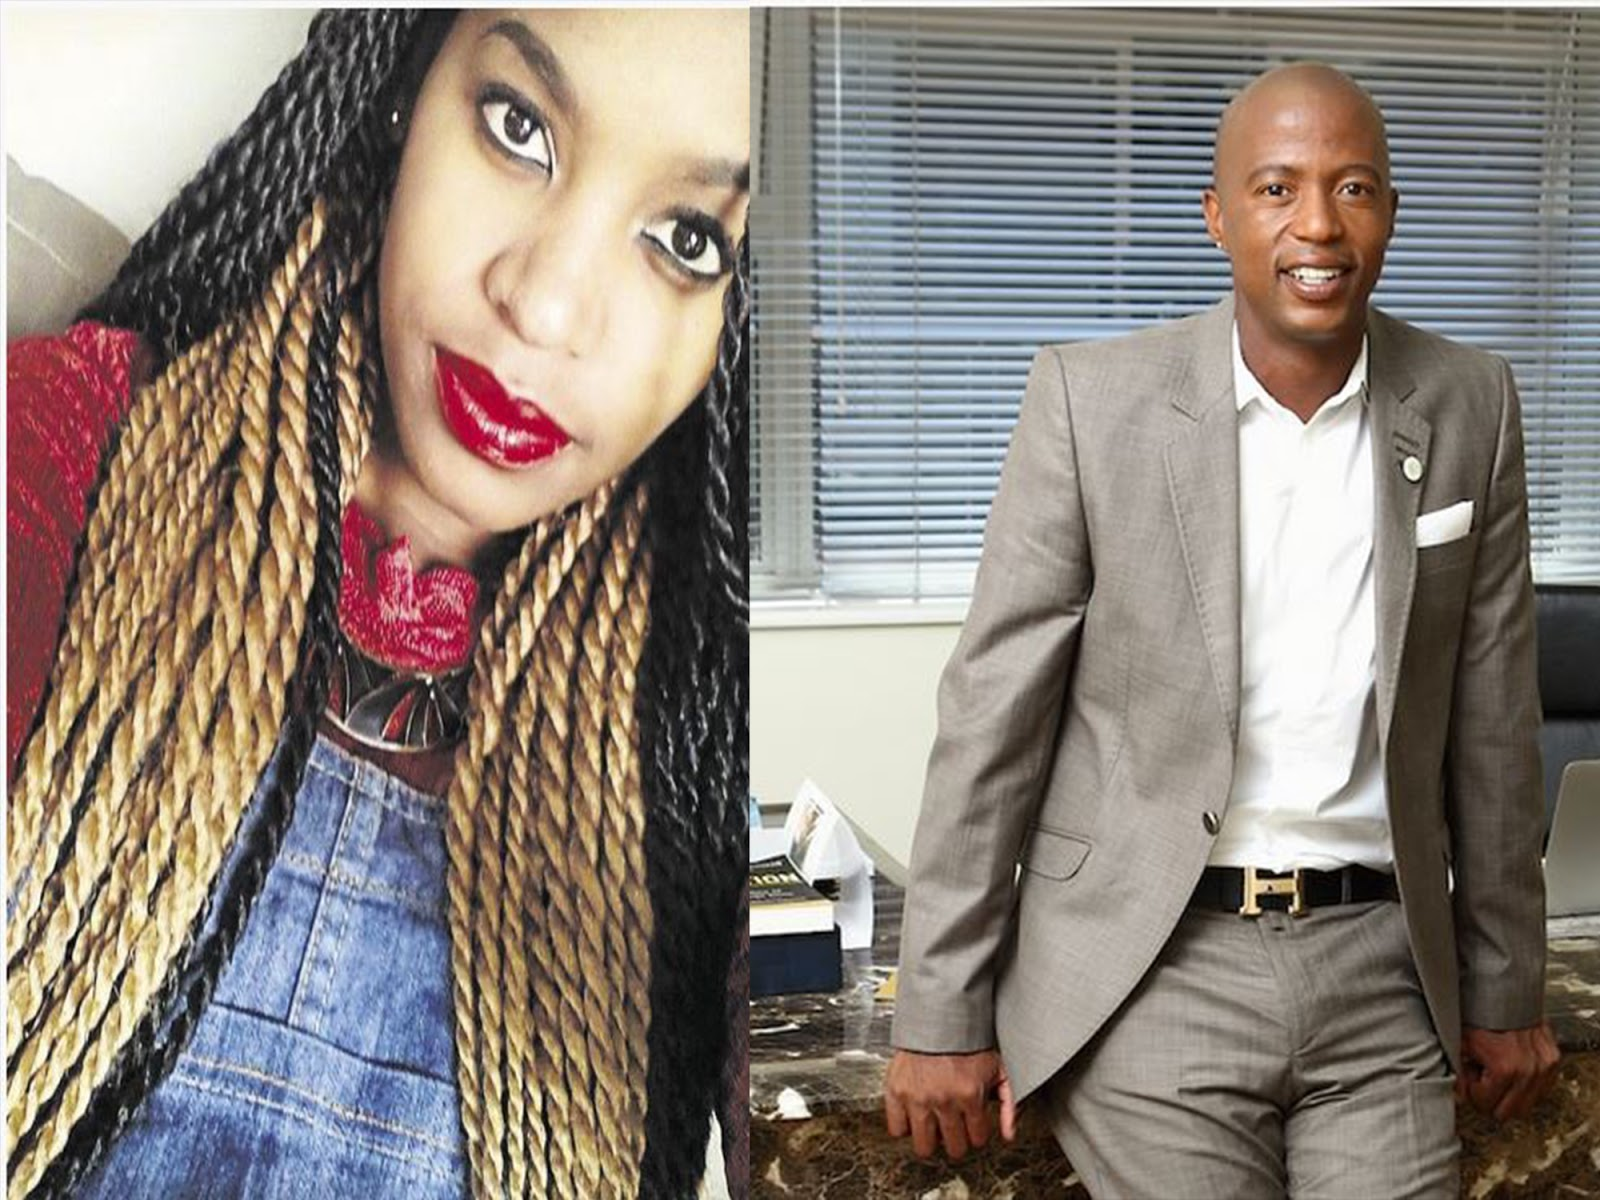 jimmy tau dating motaung daughter When former kaizer chiefs captain jimmy tau left the team last month he however motaung has now gave out the club's side of the story.